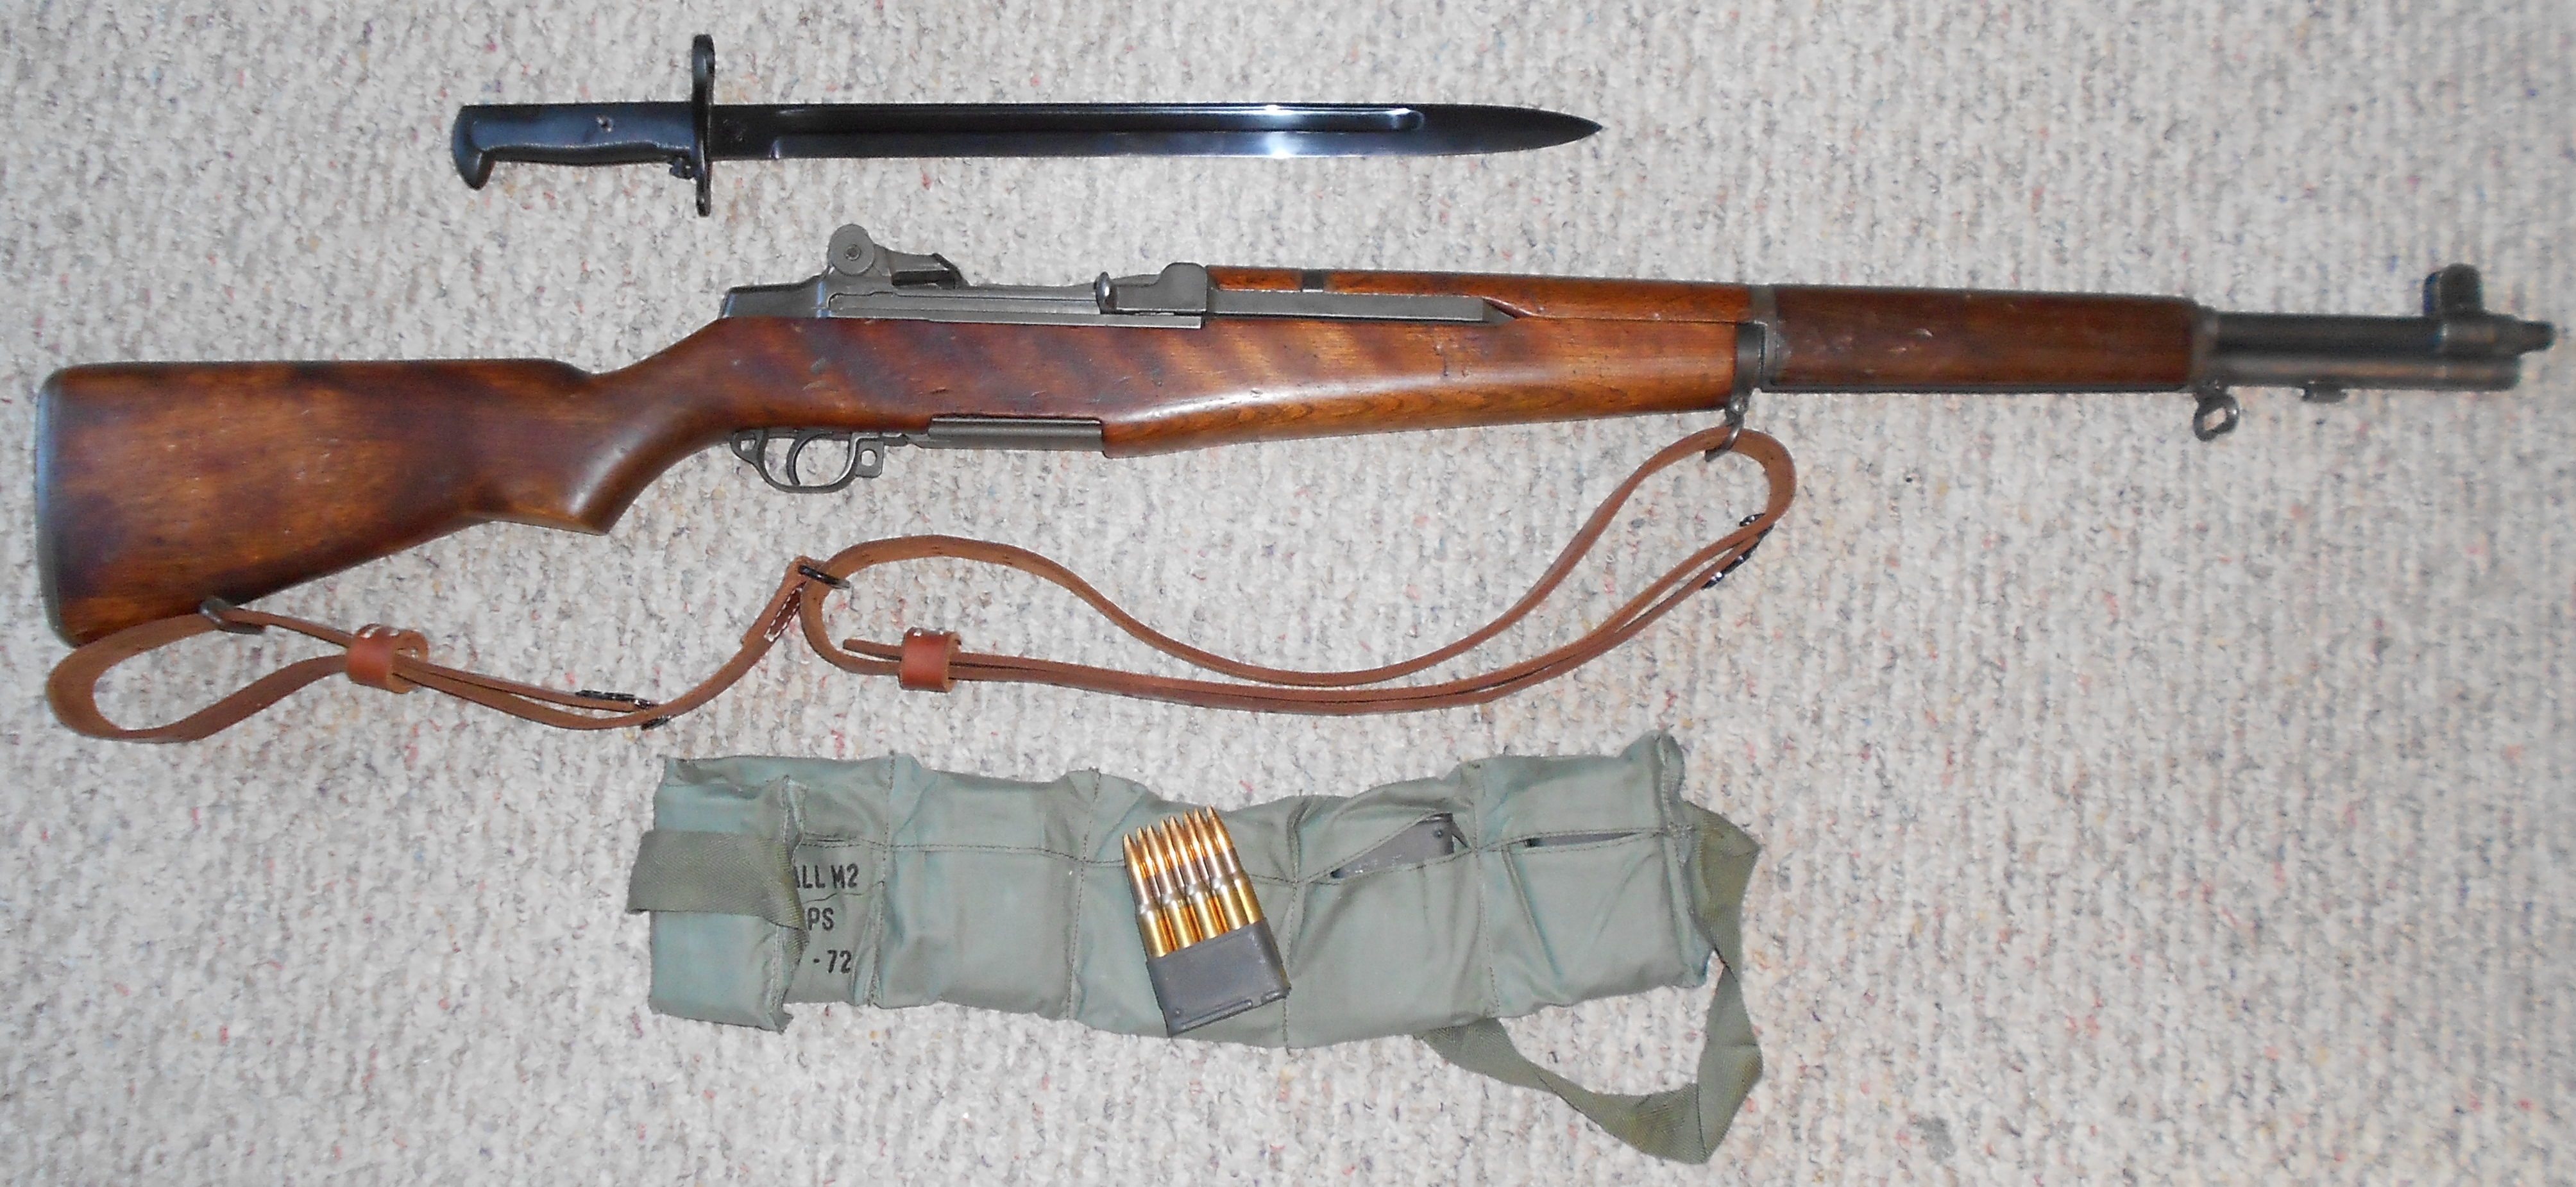 Gun Review Us Rifle Caliber 30 M1 M1 Garand Pictures to pin on ...